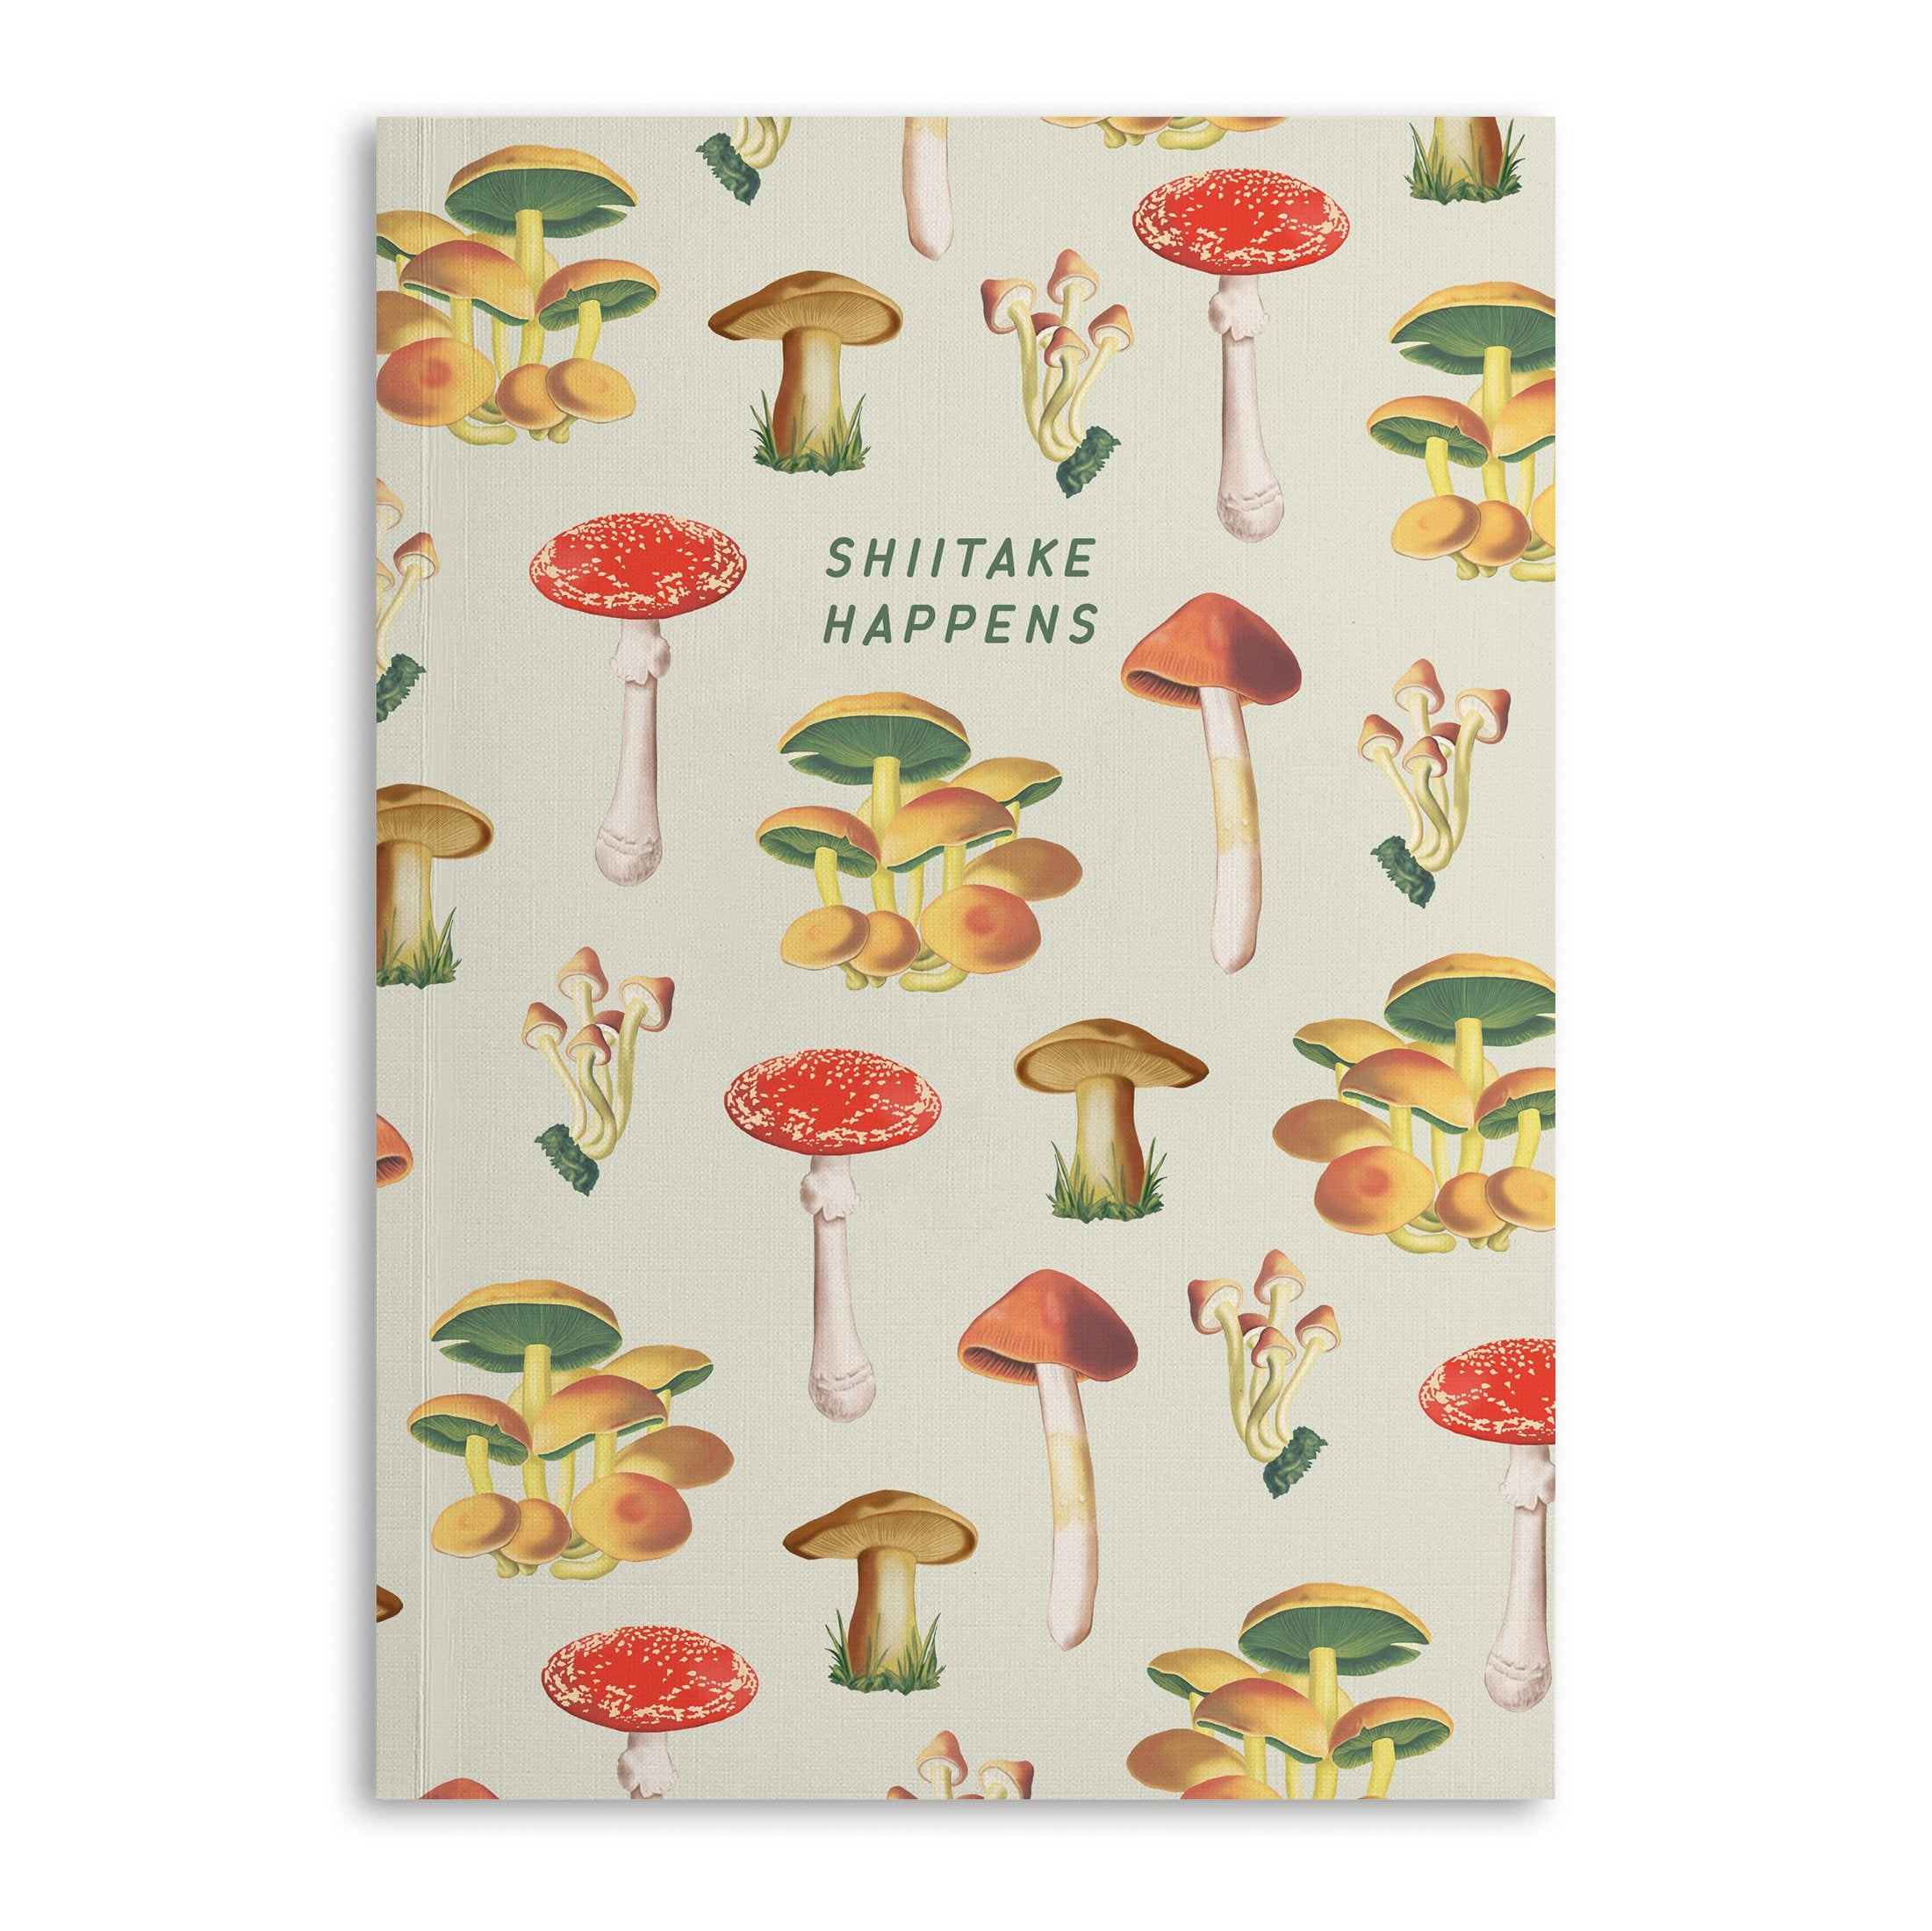 Mushroom Shitake Happens A5 Lined Notebook (120 Pages) - US